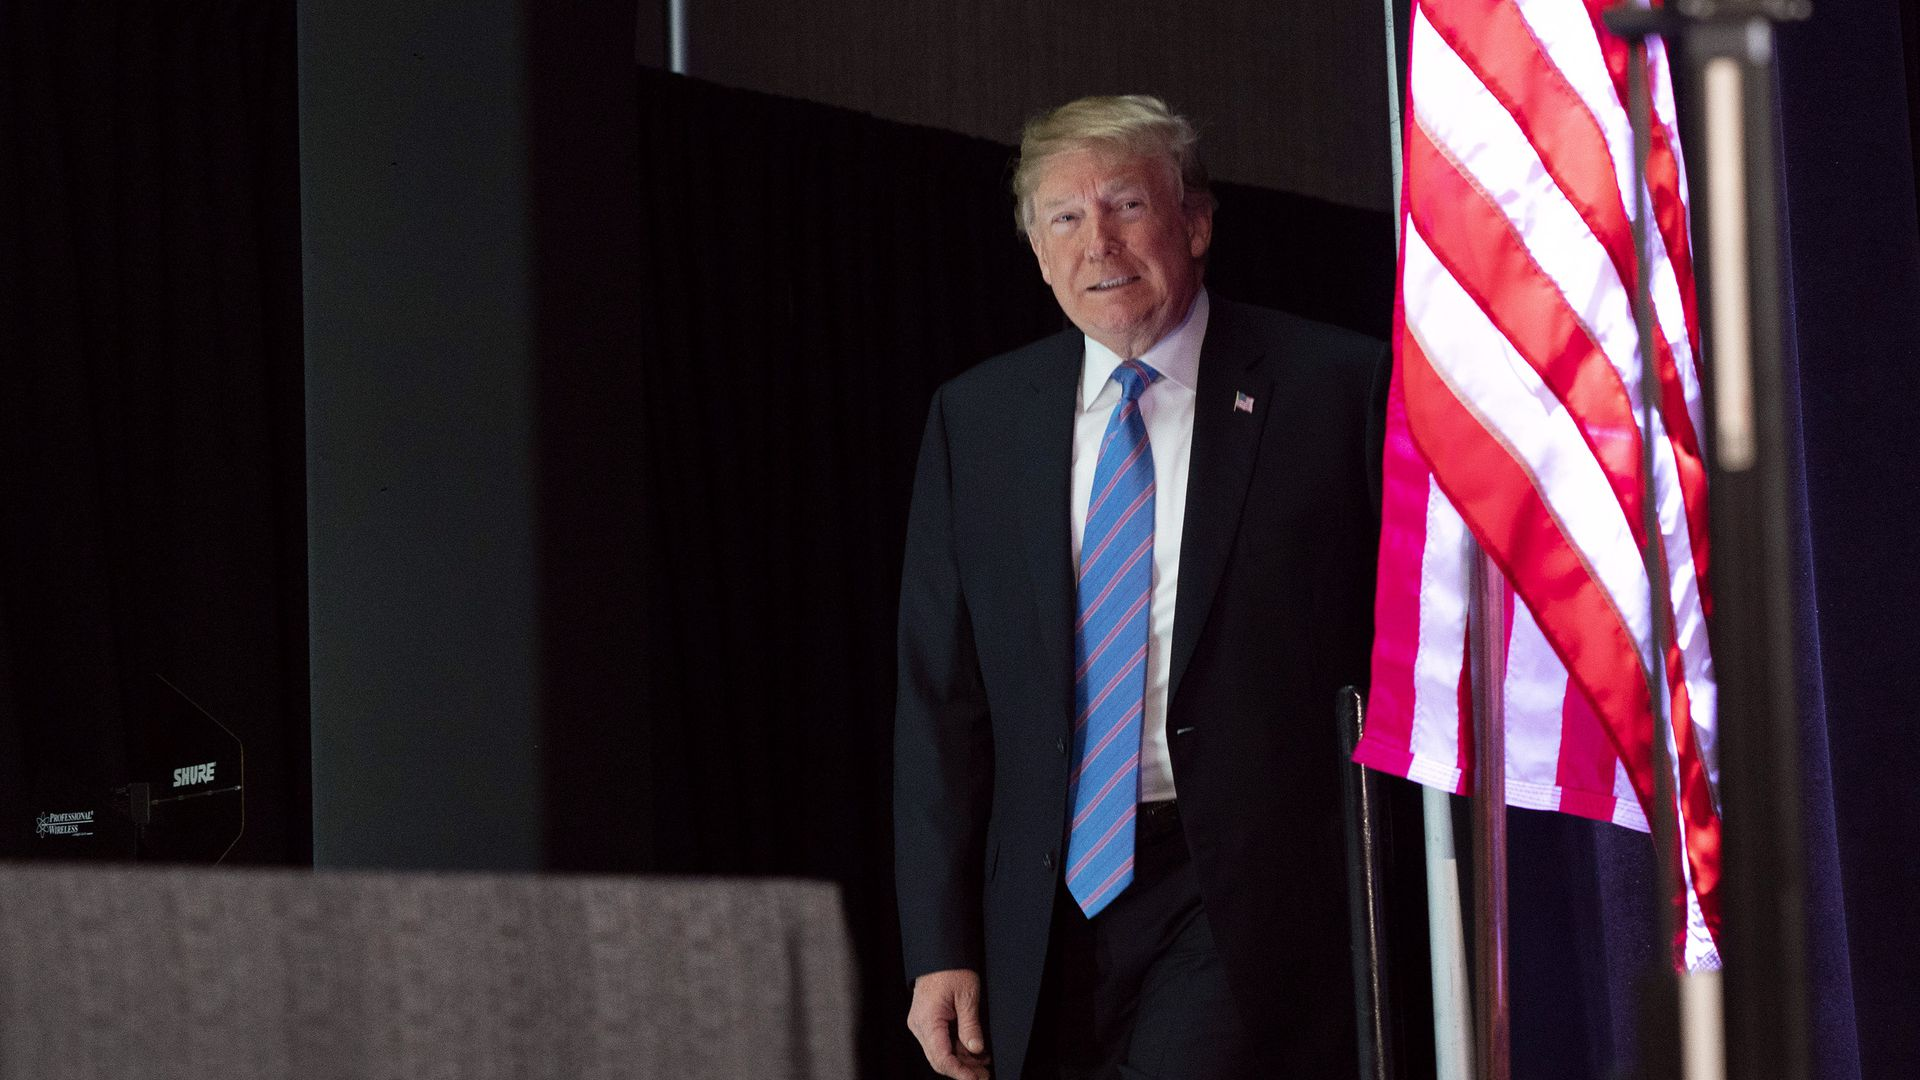 Donald Trump walking on stage peering from behind an American Flag